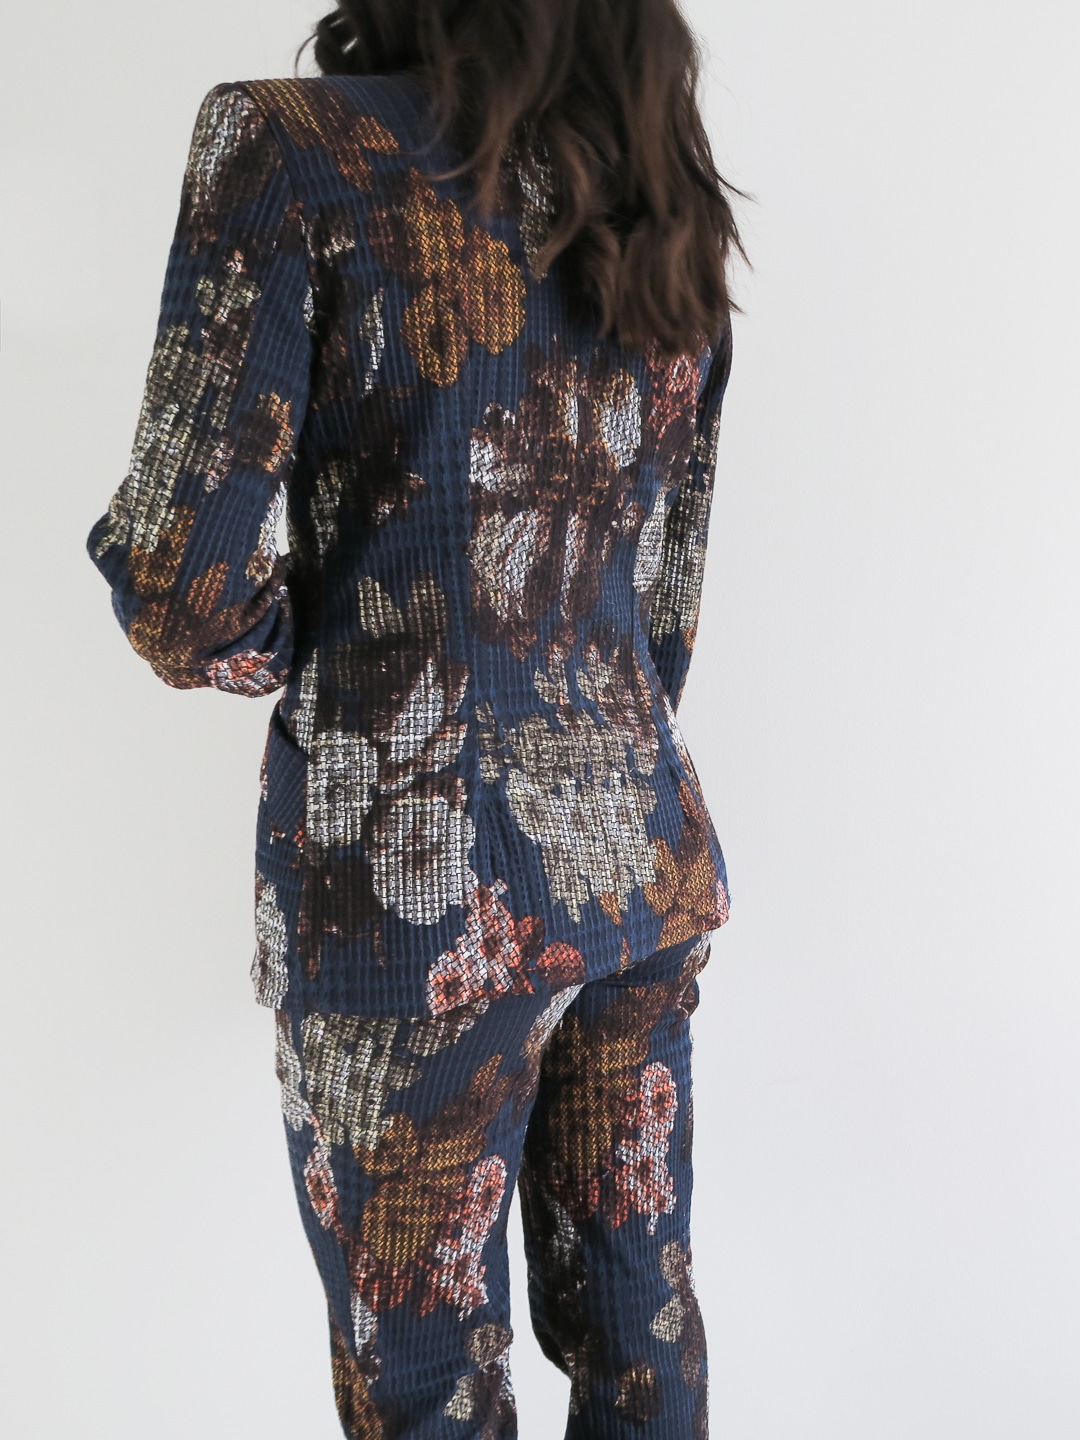 How To Style a Womens Floral Suit | Curiously Conscious